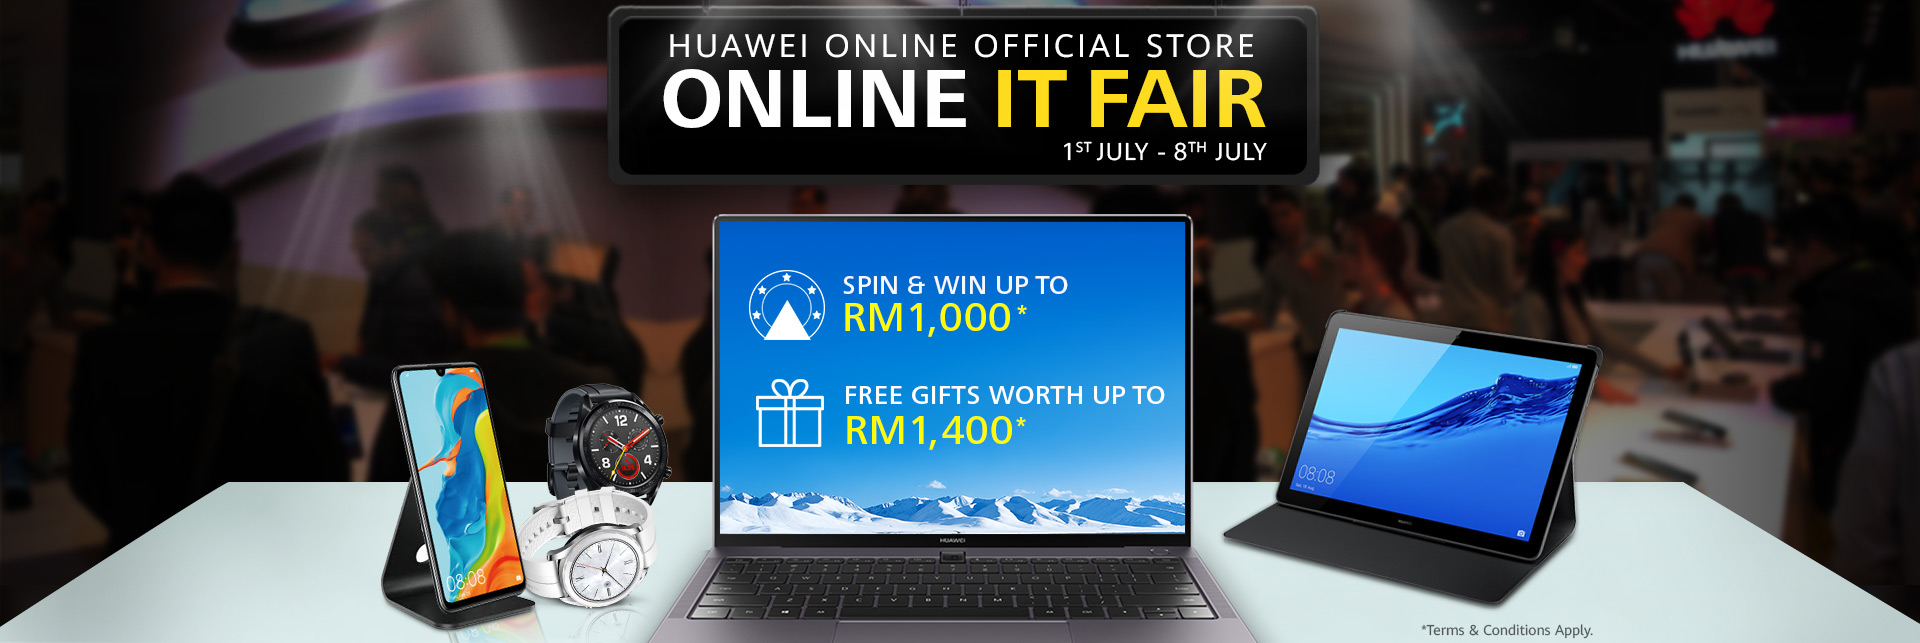 Image from HUAWEI Online Official Store